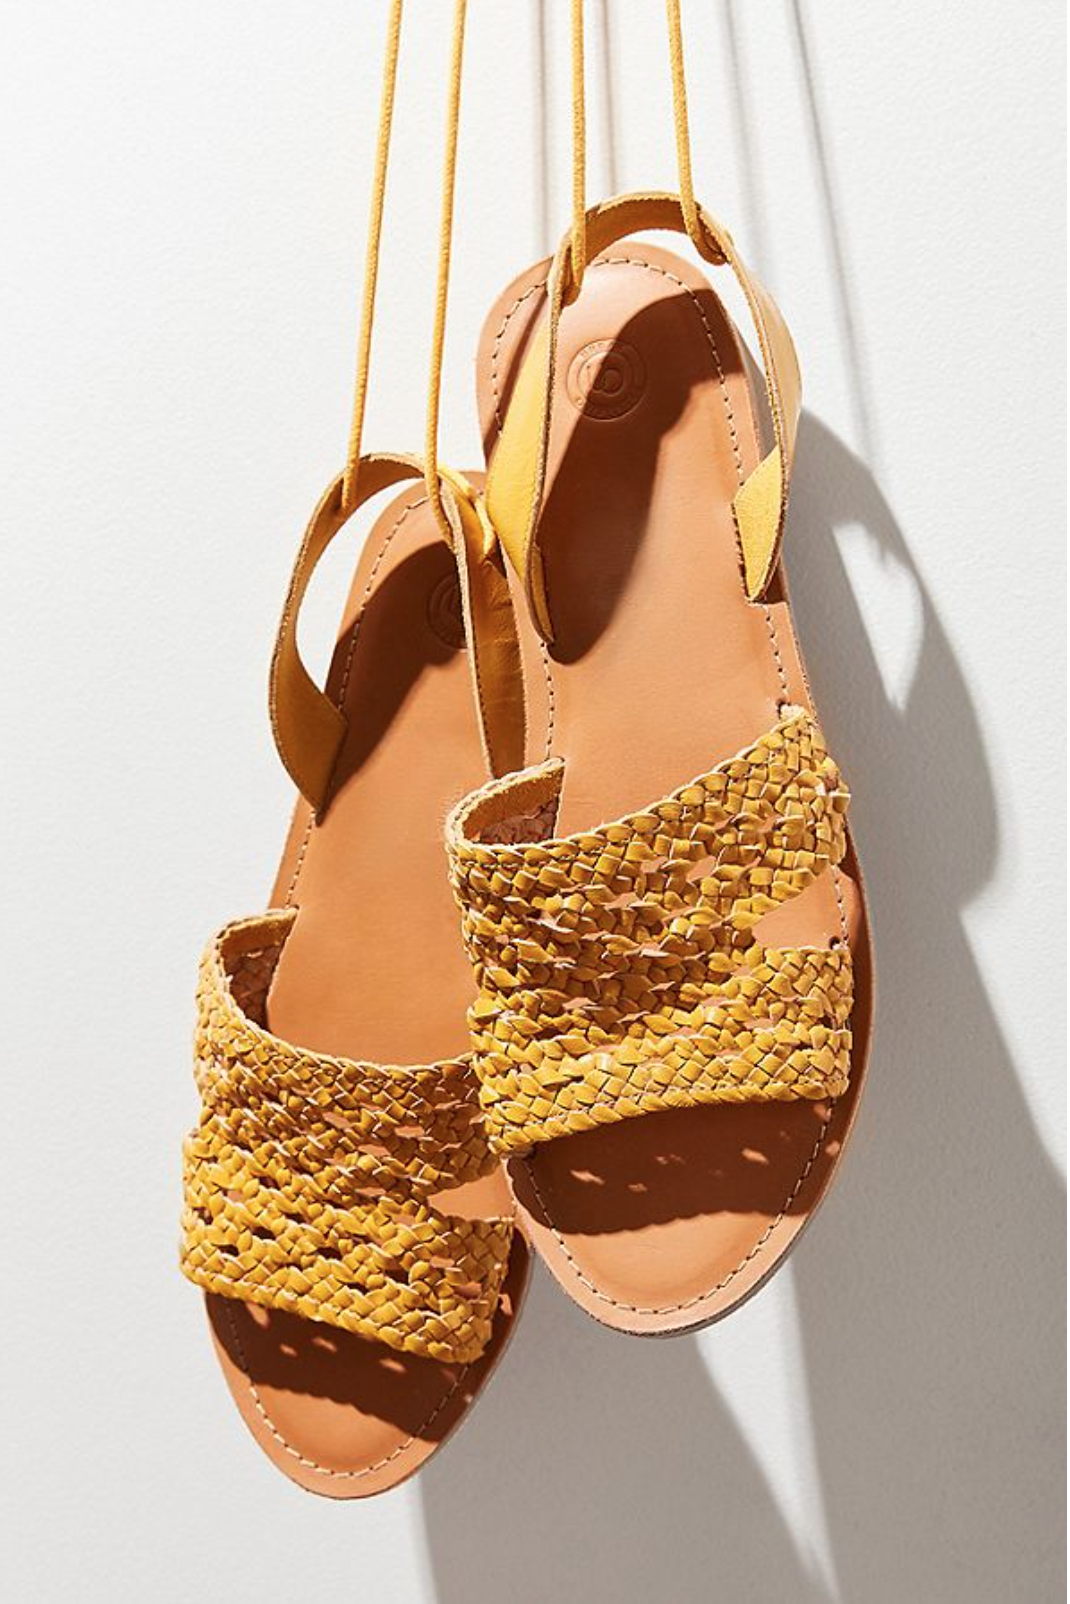 Put Your Best Foot Forward: The Coolest Summer Sandals for Every Budget - Paper and Stitch